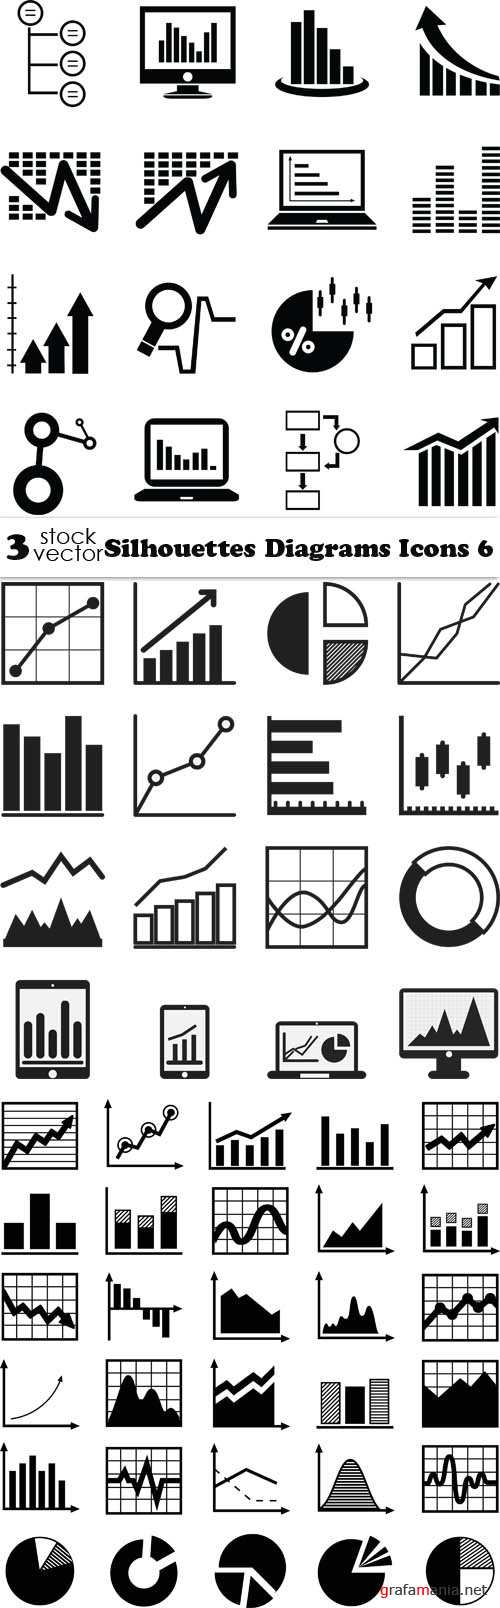 Vectors - Silhouettes Diagrams Icons 6